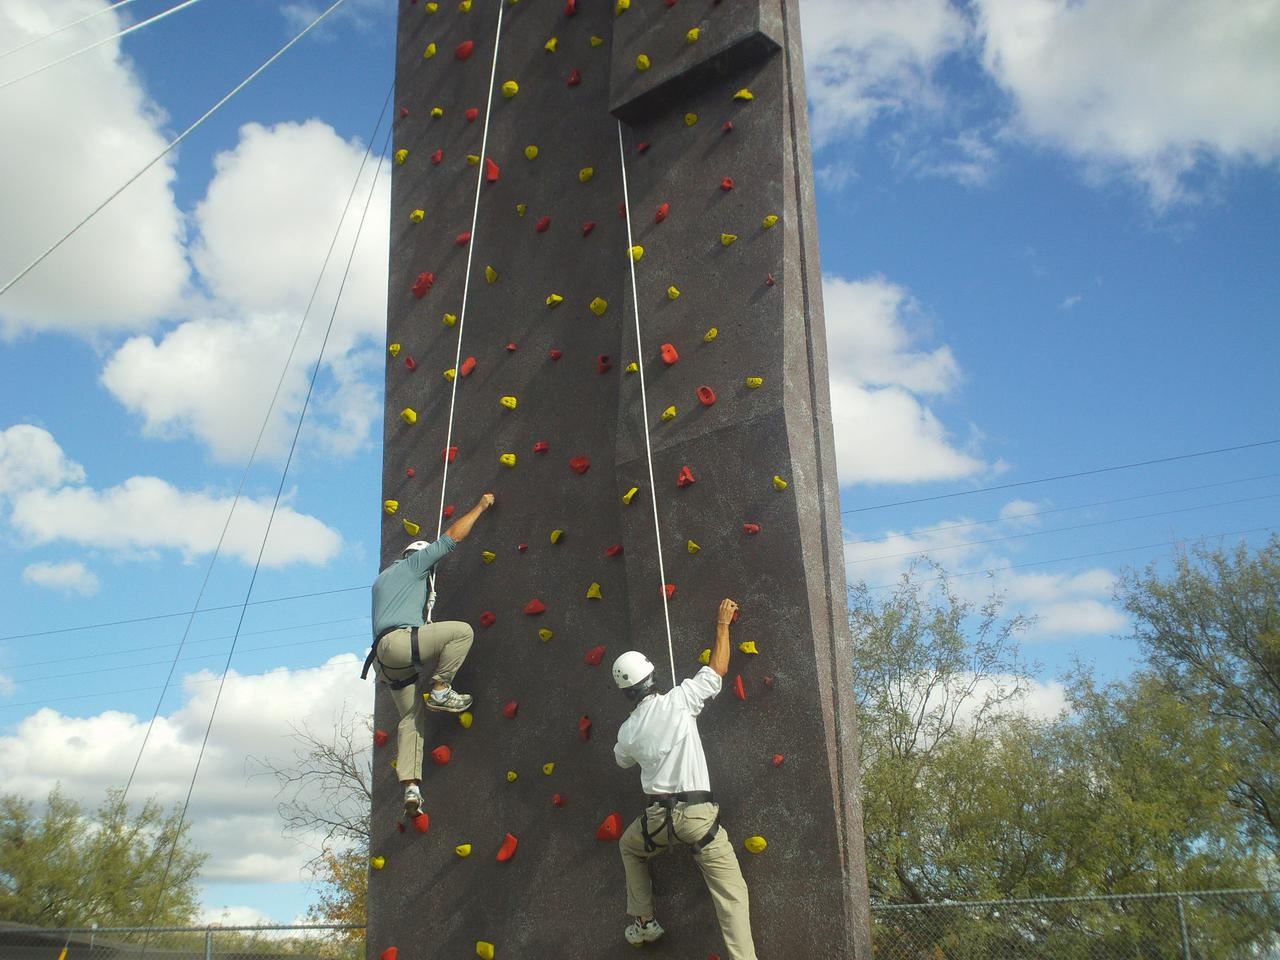 Arizona climbing wall texture